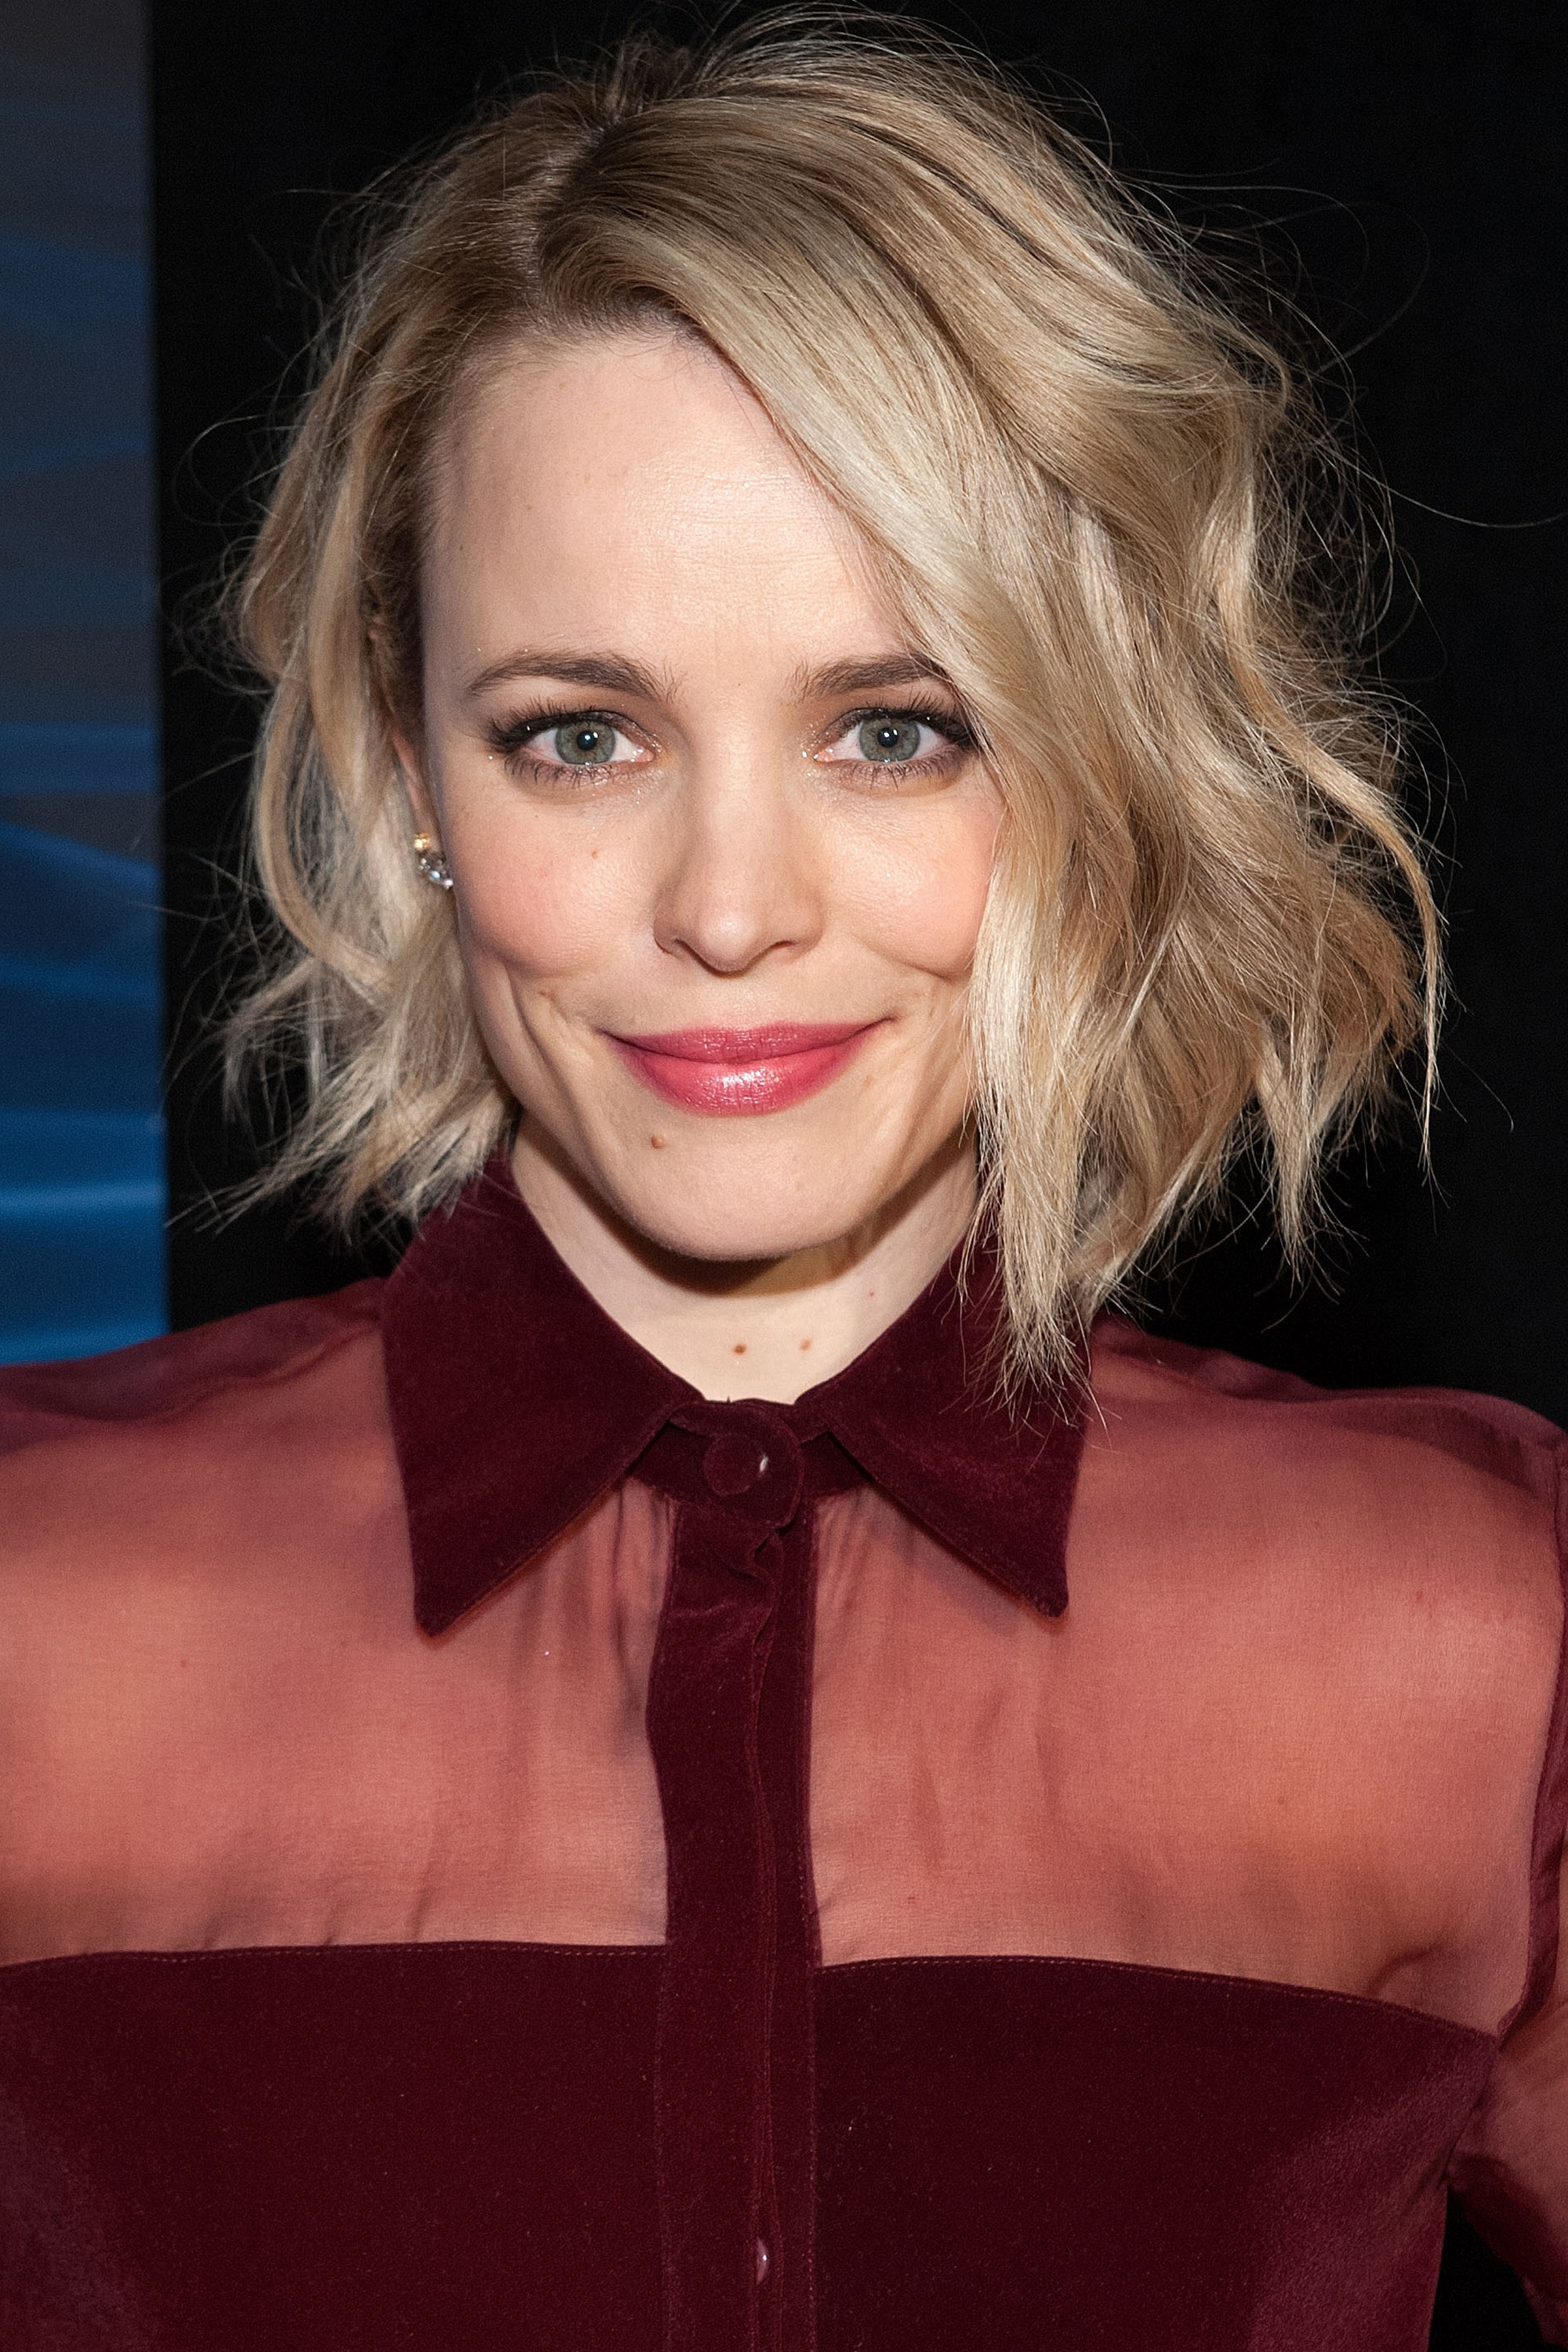 Tremendous 37 Cute Bob And Lob Haircuts 2017 Best Celebrity Long Bob Hairstyles Short Hairstyles For Black Women Fulllsitofus